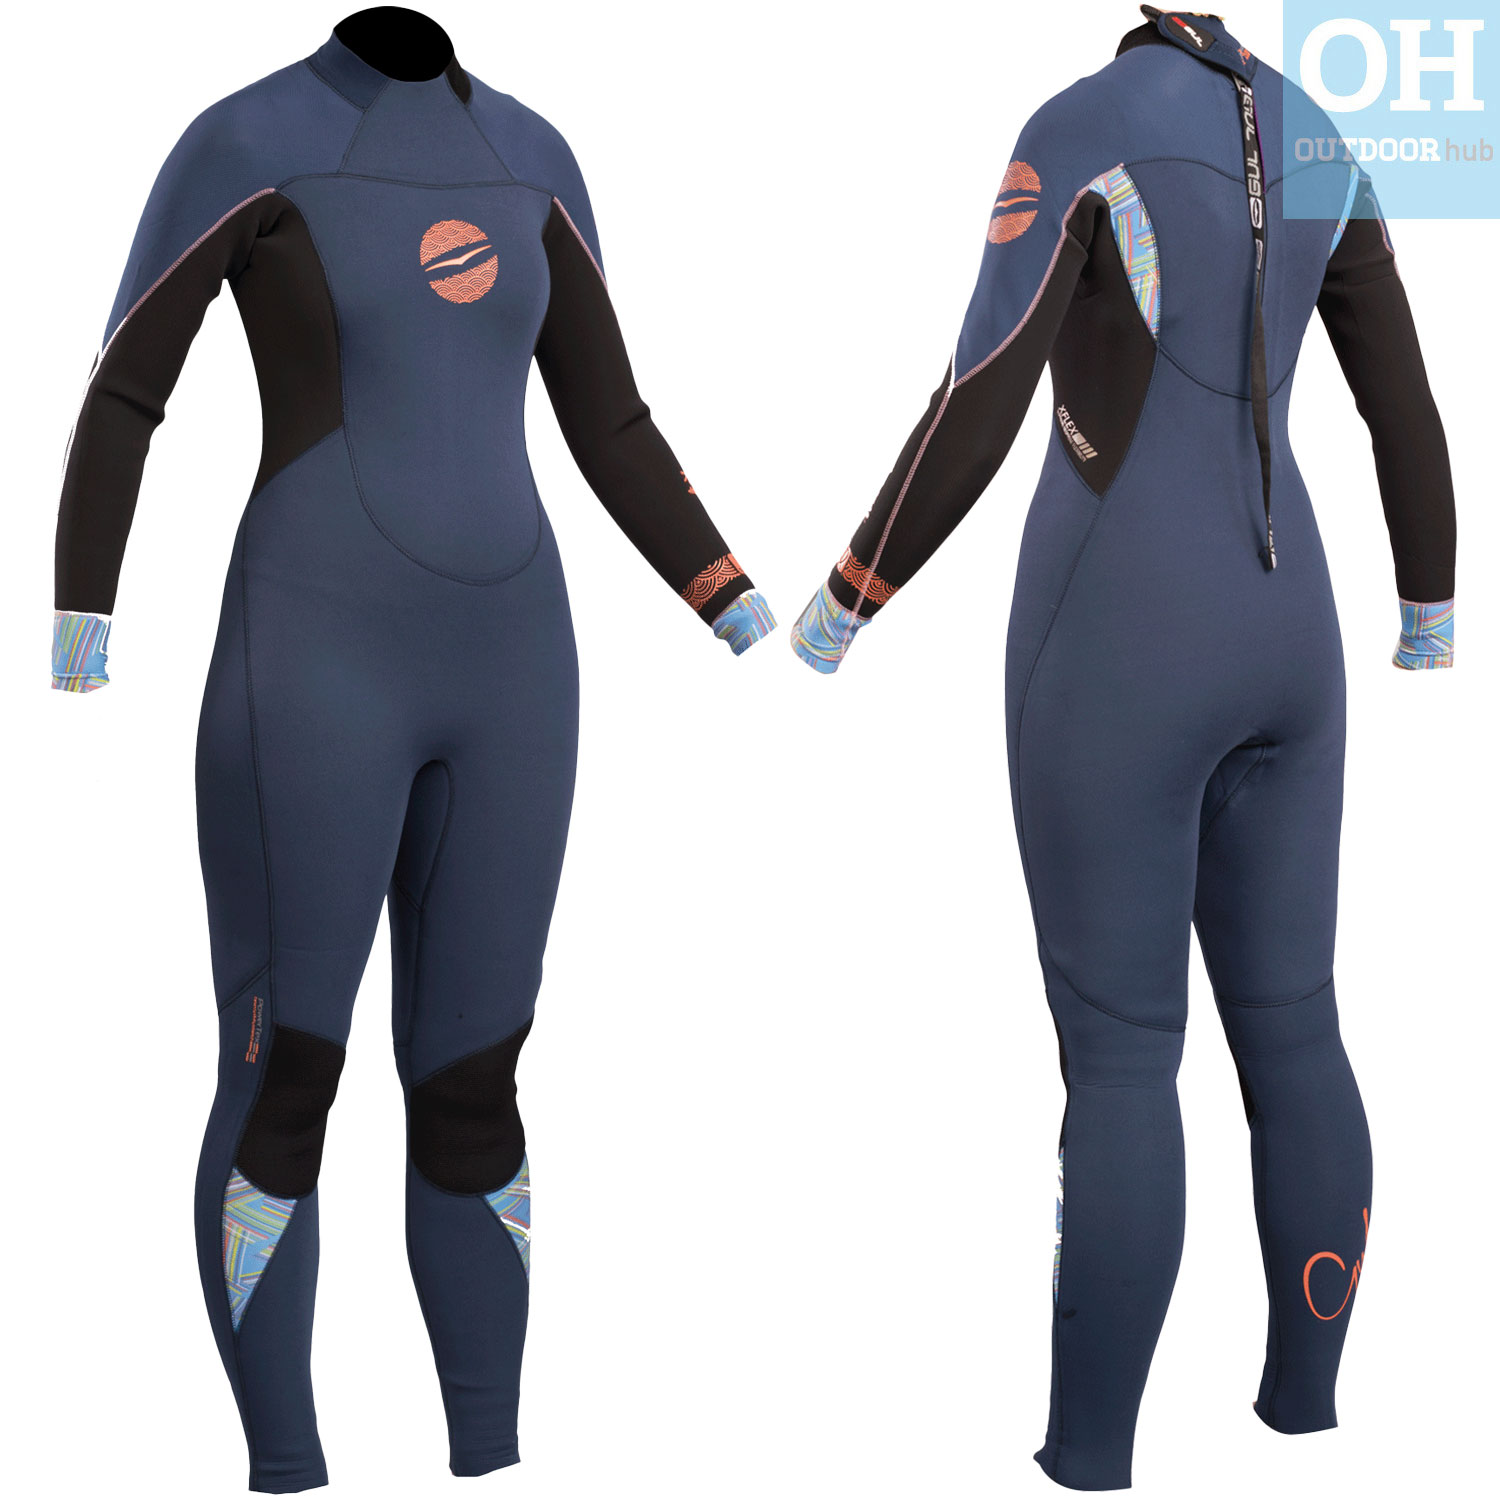 2018 Gul Response Womens 4 3mm GBS Back Zip Wetsuit Black Re1248-b4 12.  About this product. Picture 1 of 5  Picture 2 of 5  Picture 3 of 5 ... 9846fc80a